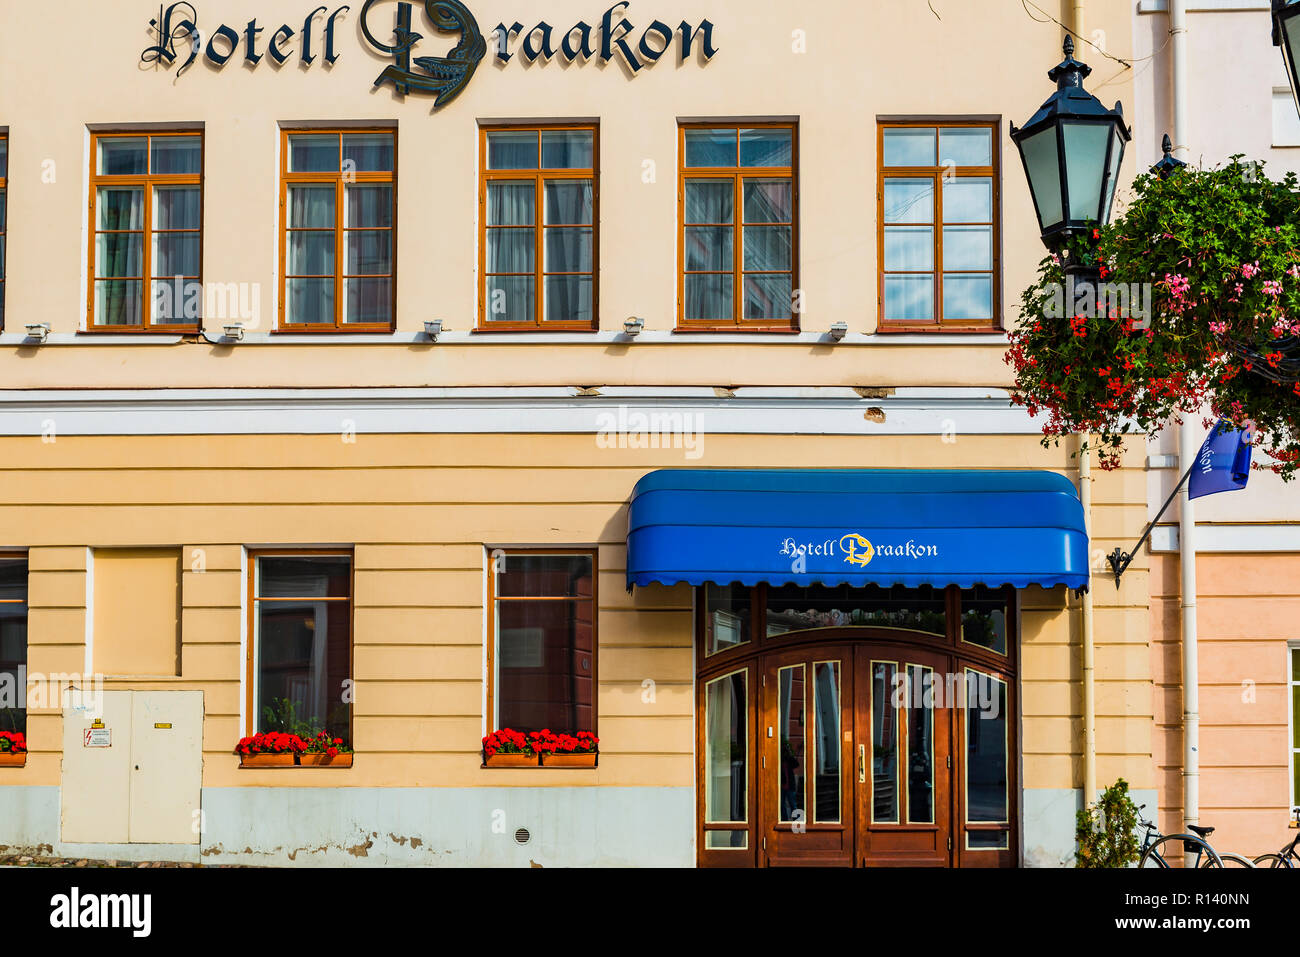 Hotel Draakon. Hotel establishments. Tartu, Tartu County, Estonia, Baltic states, Europe. - Stock Image